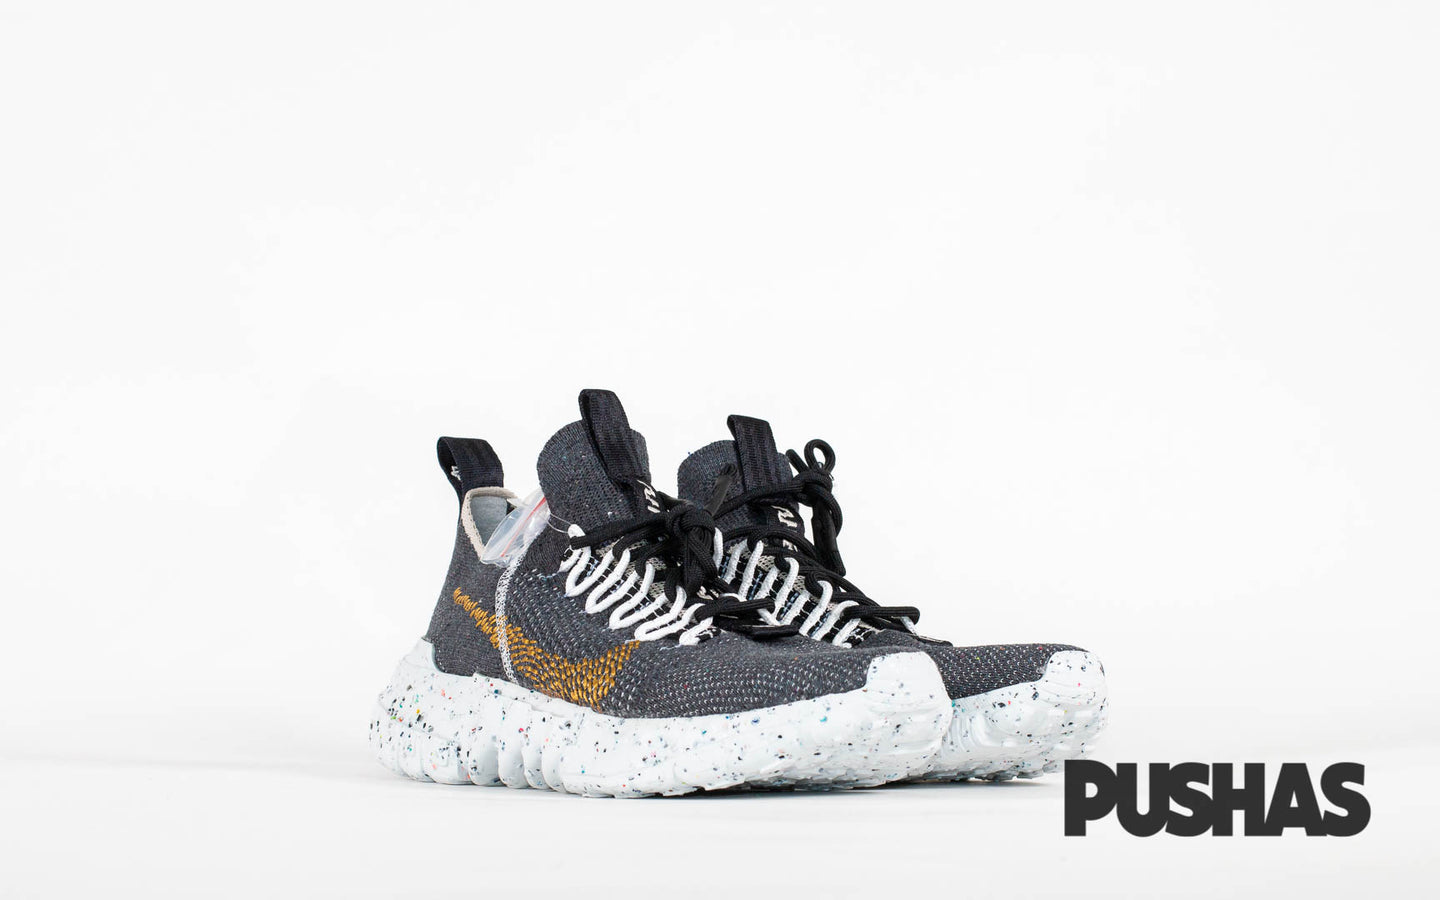 pushas-nike-Space-Hippie-01-Black-Wheat